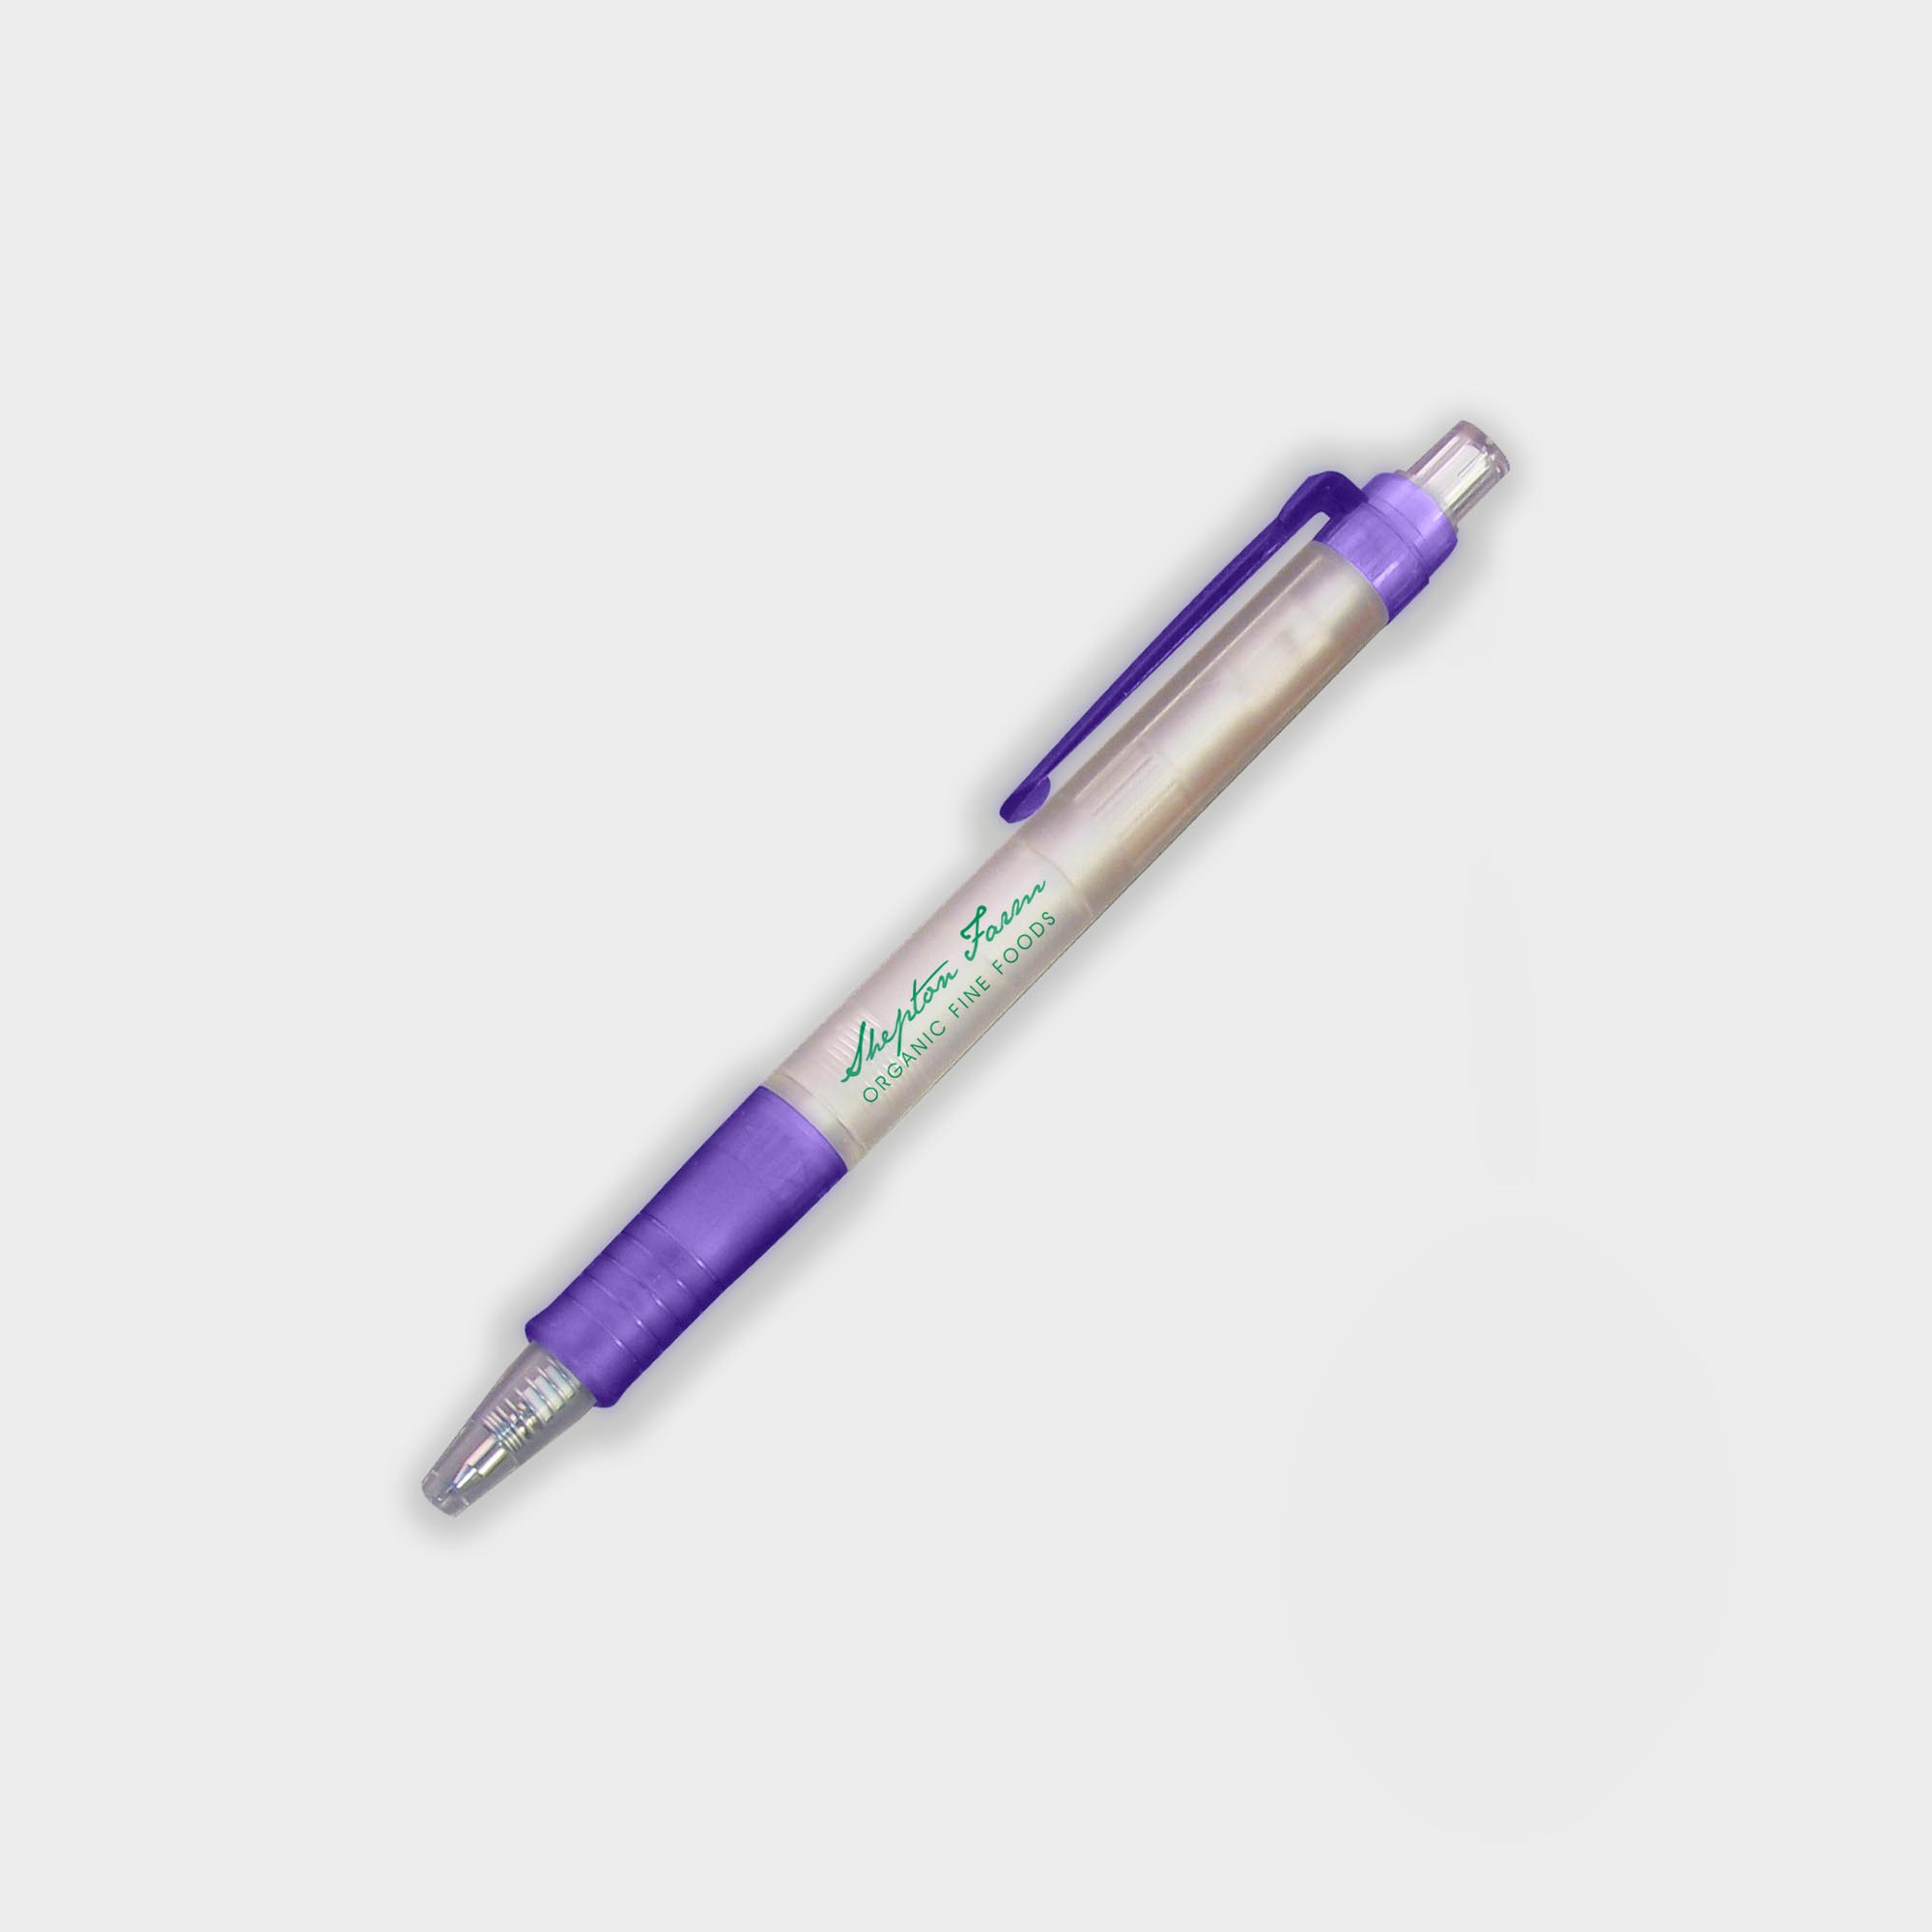 Promo Bio Pen Frosted